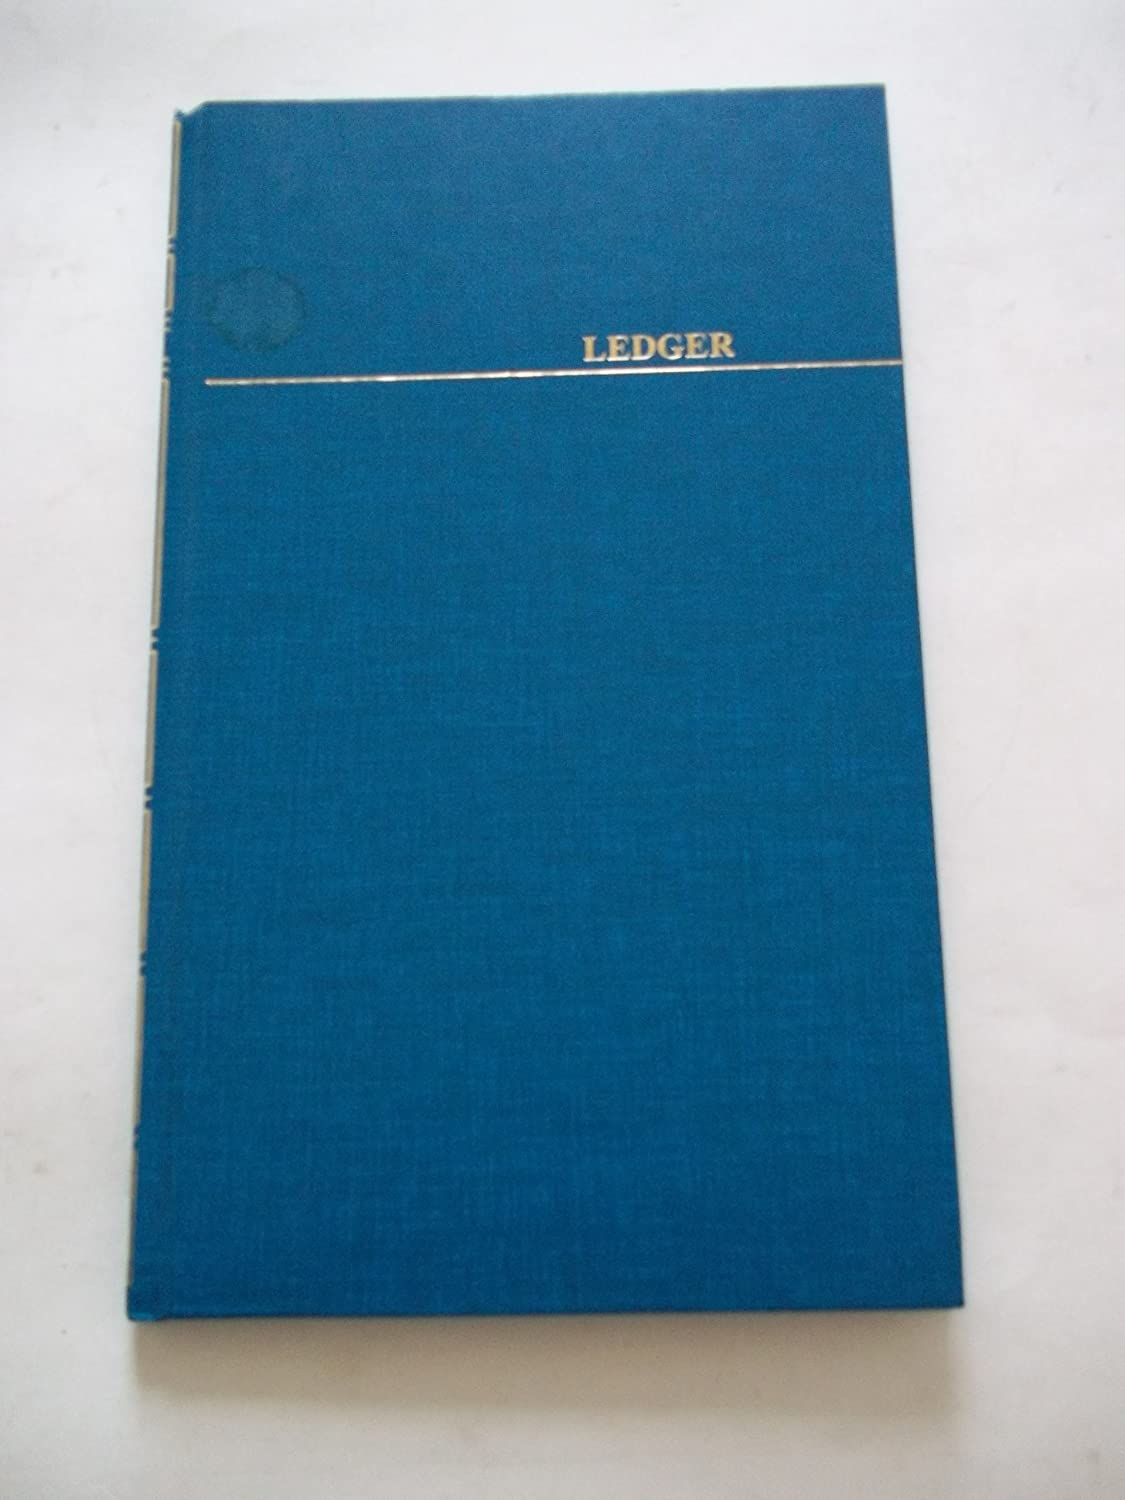 Boorum Pease Account Book 55% OFF 96332 150 Ledger Pa Entry Max 62% OFF Single